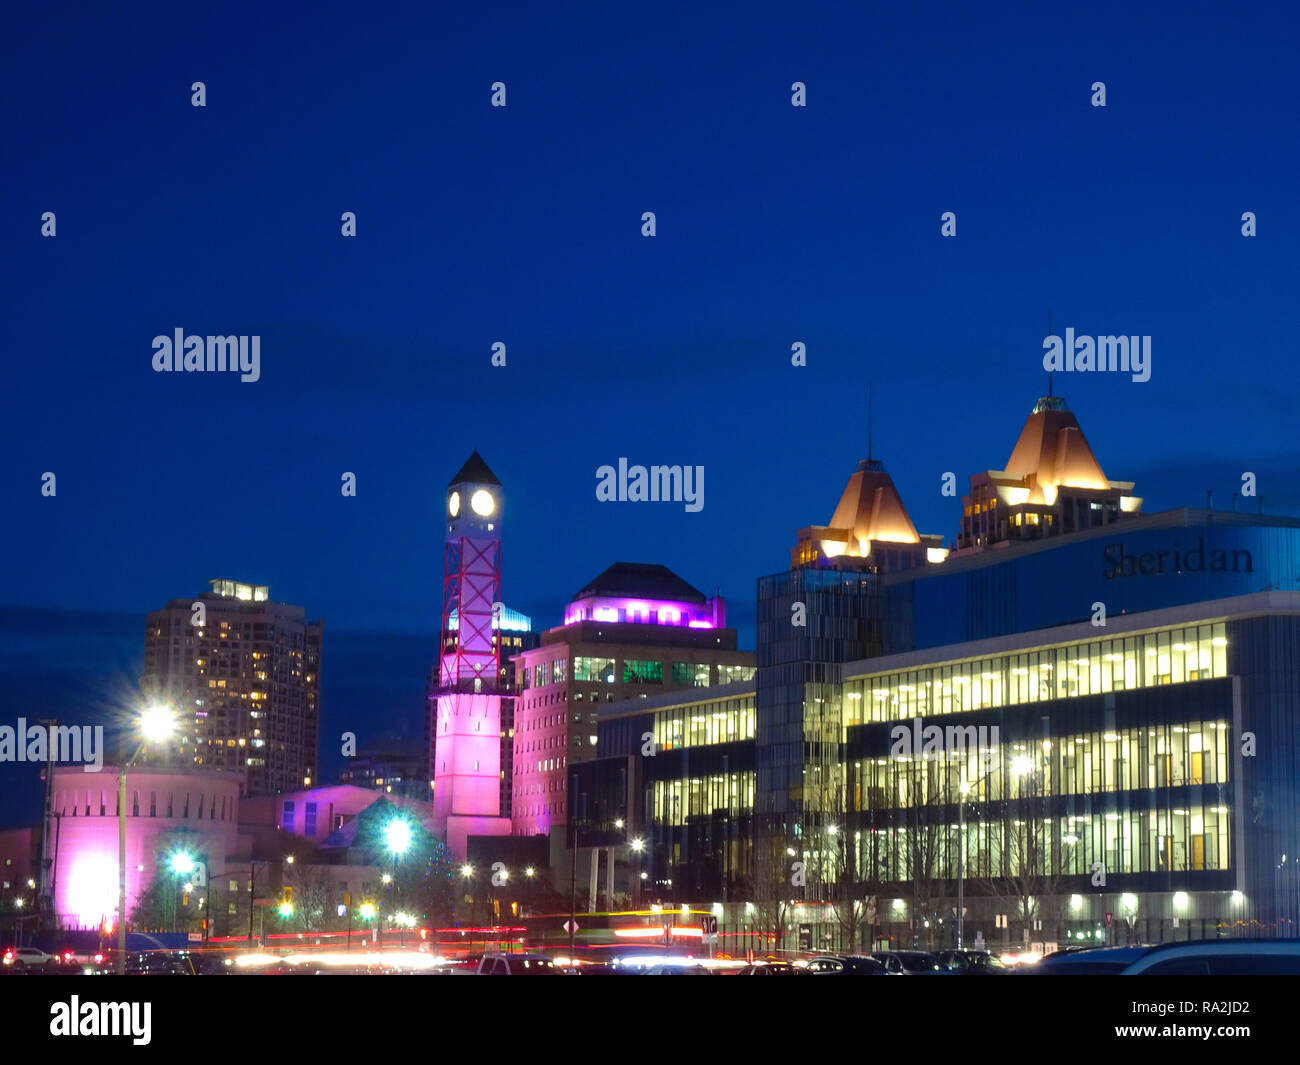 Various shots of Toronto taken during the blue hour. The blue sky is contrasted against the warm glow of the city's lights. - Stock Image